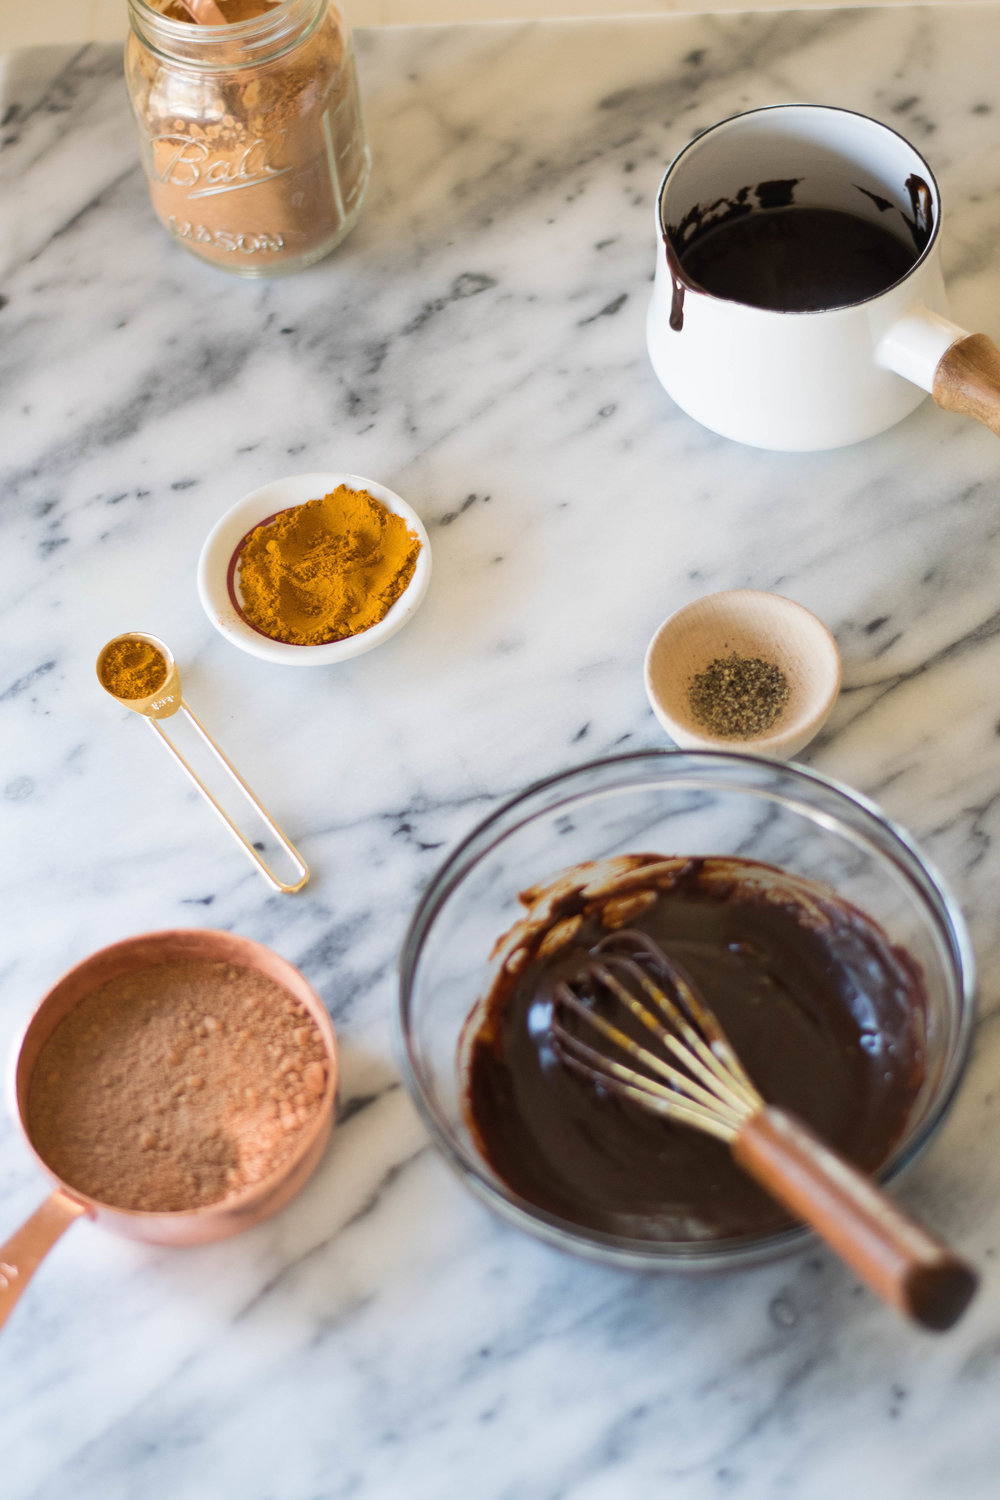 Golden Milk Chocolate Crunch Cups | All Purpose Flour Child